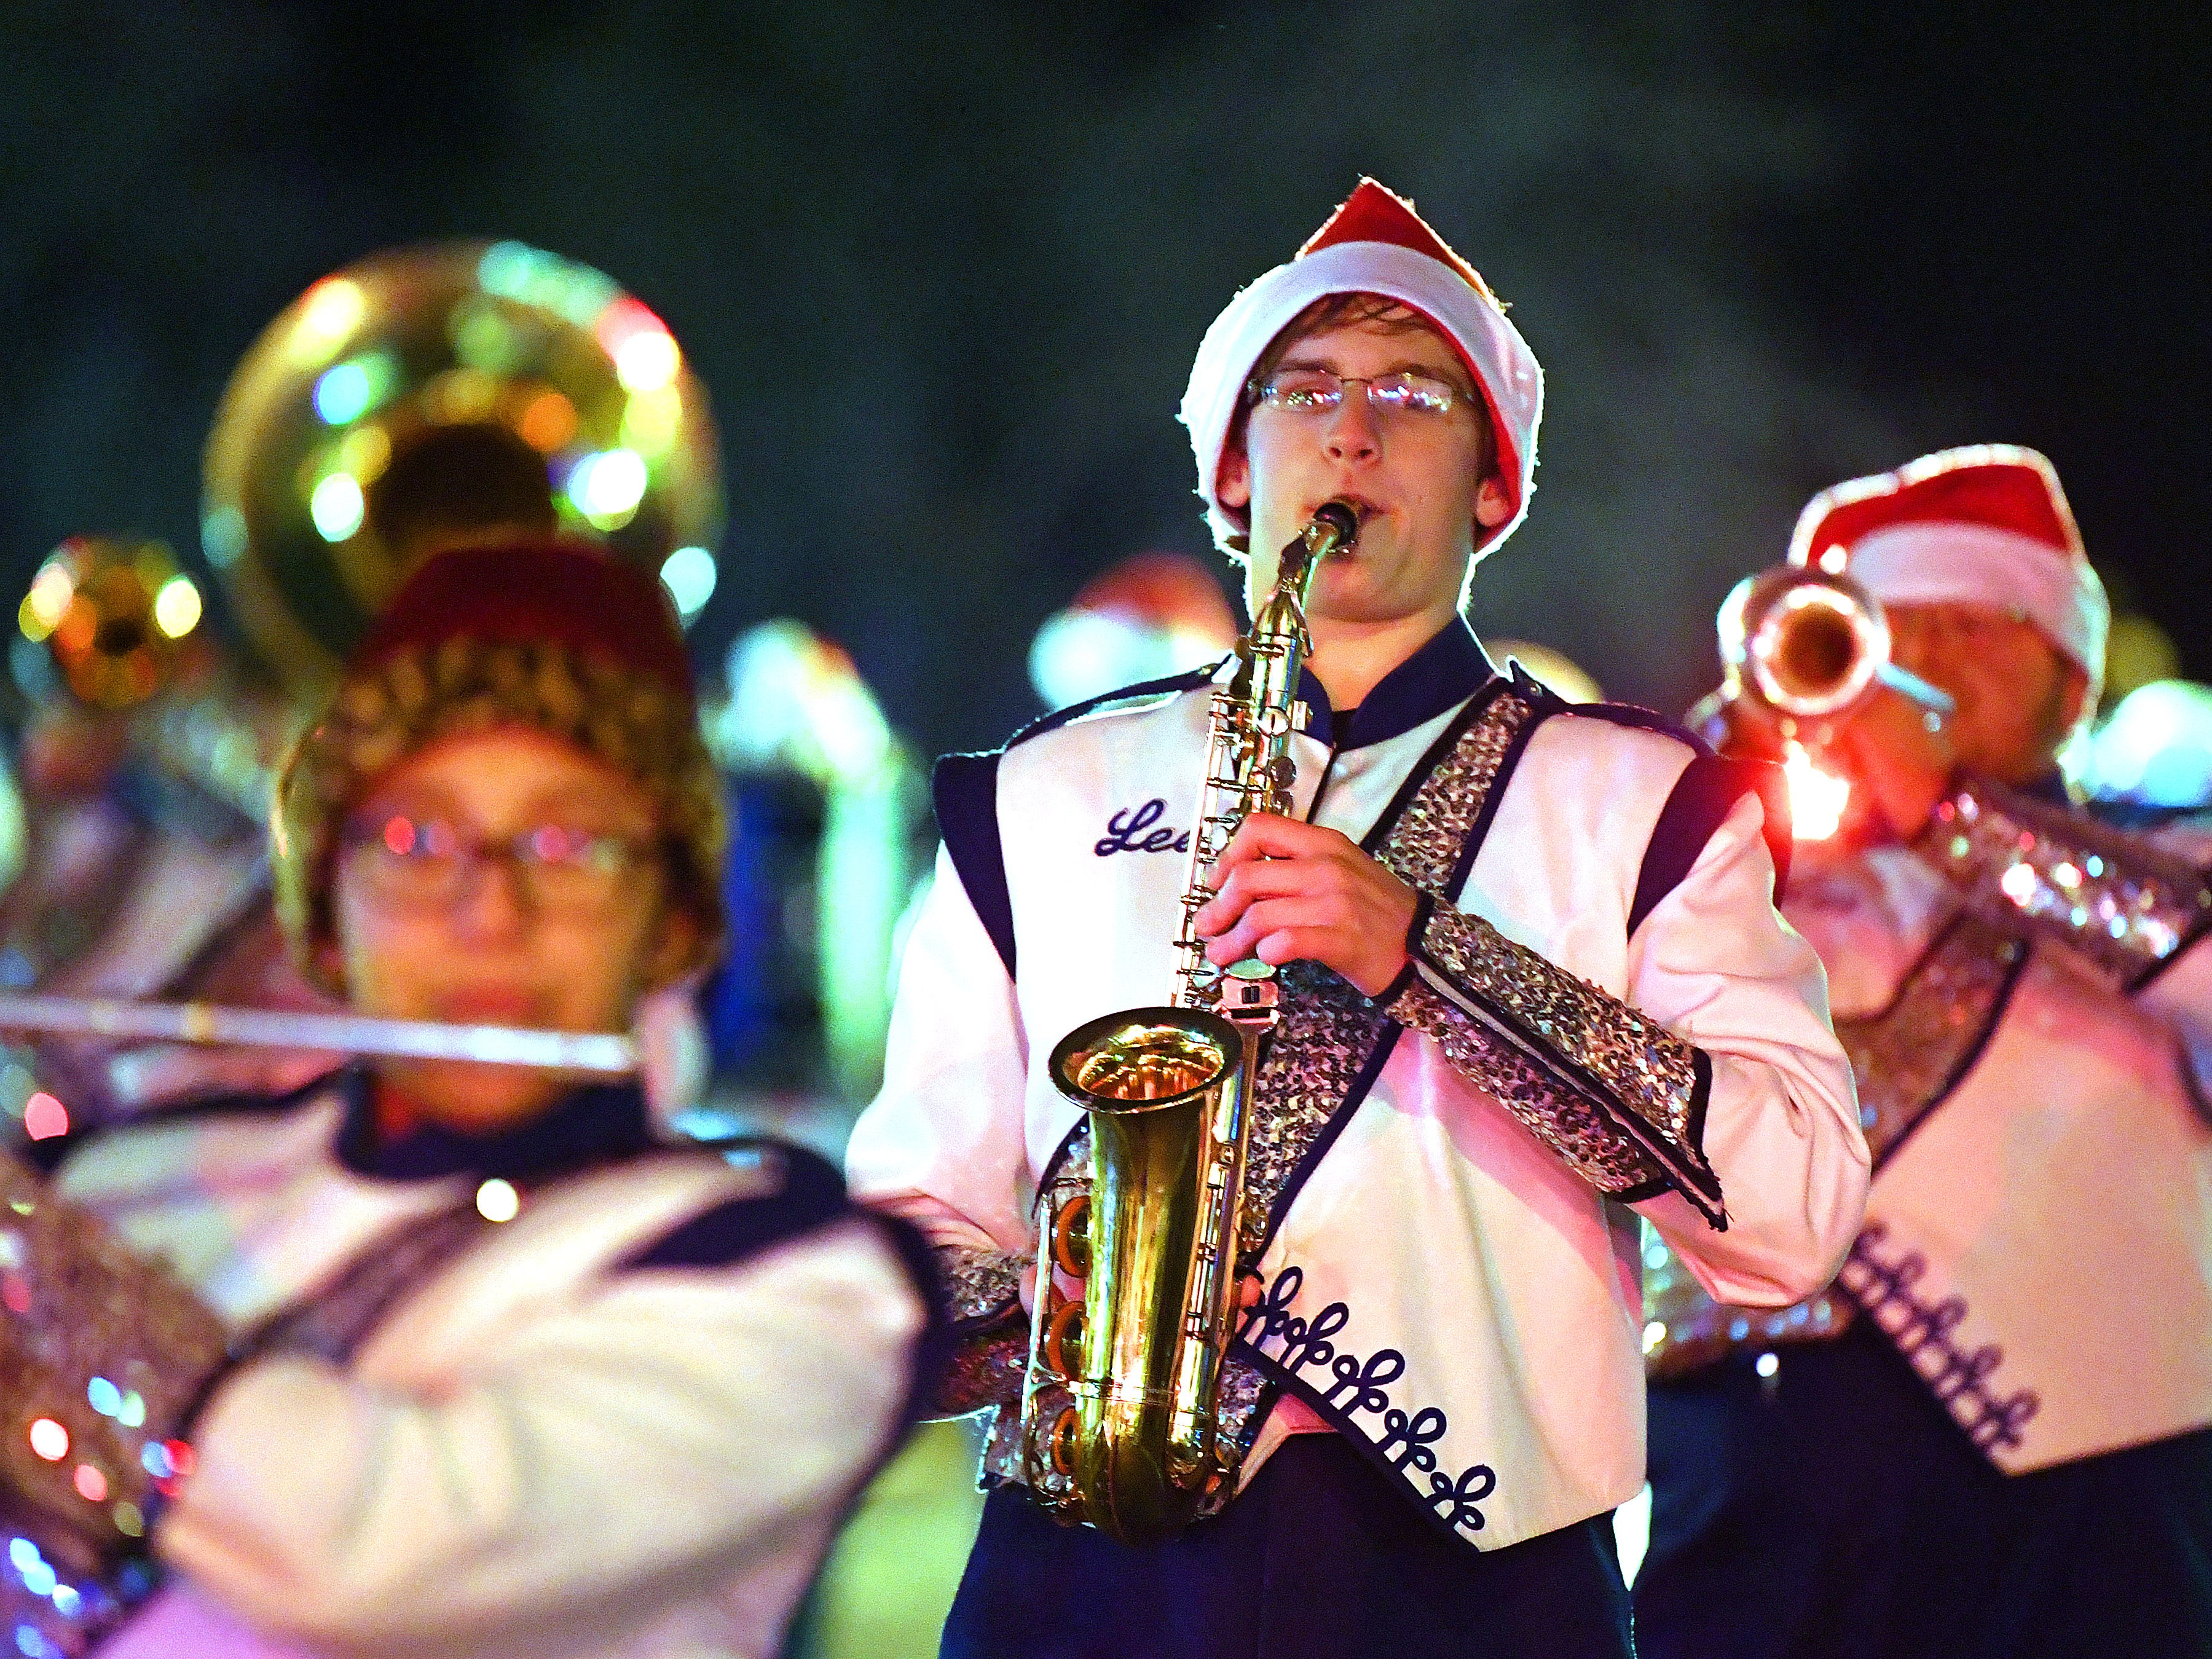 The Robert E. Lee High School marching band performs during the Staunton Christmas Parade on Monday, Nov. 26, 2018.